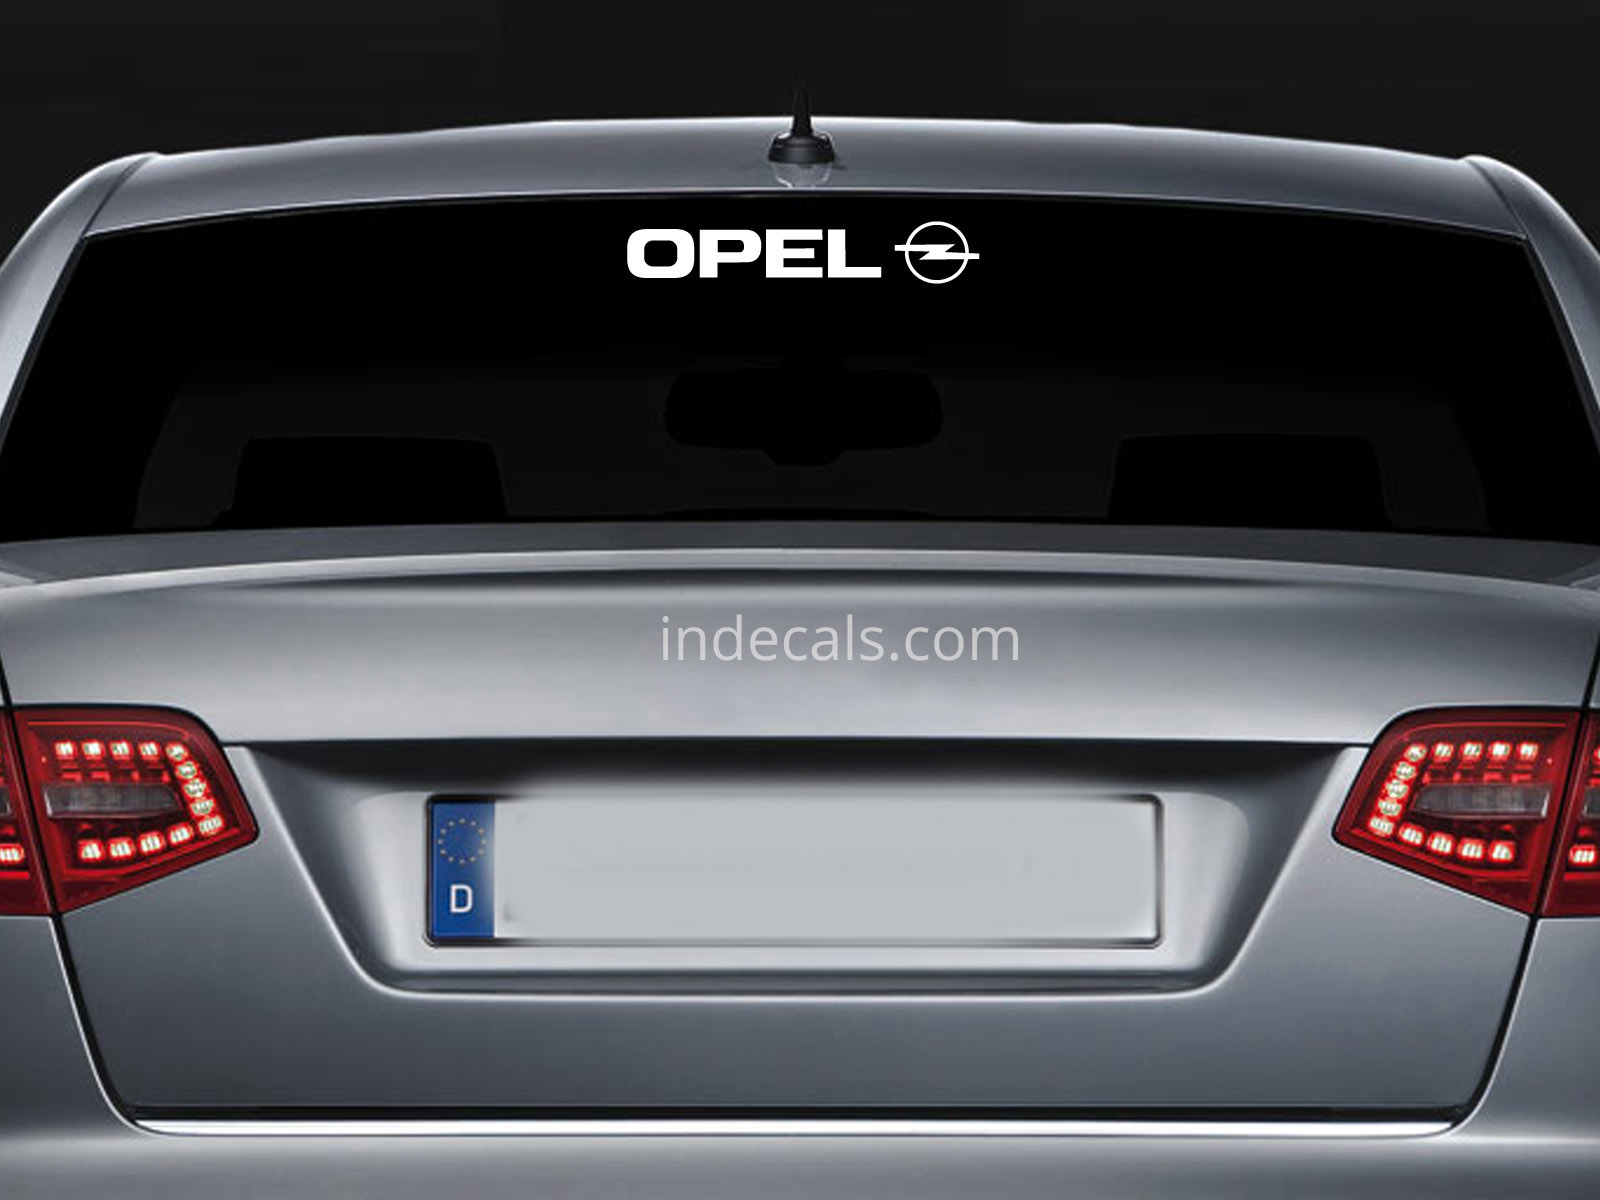 1 x Opel Sticker for Windshield or Back Window - White